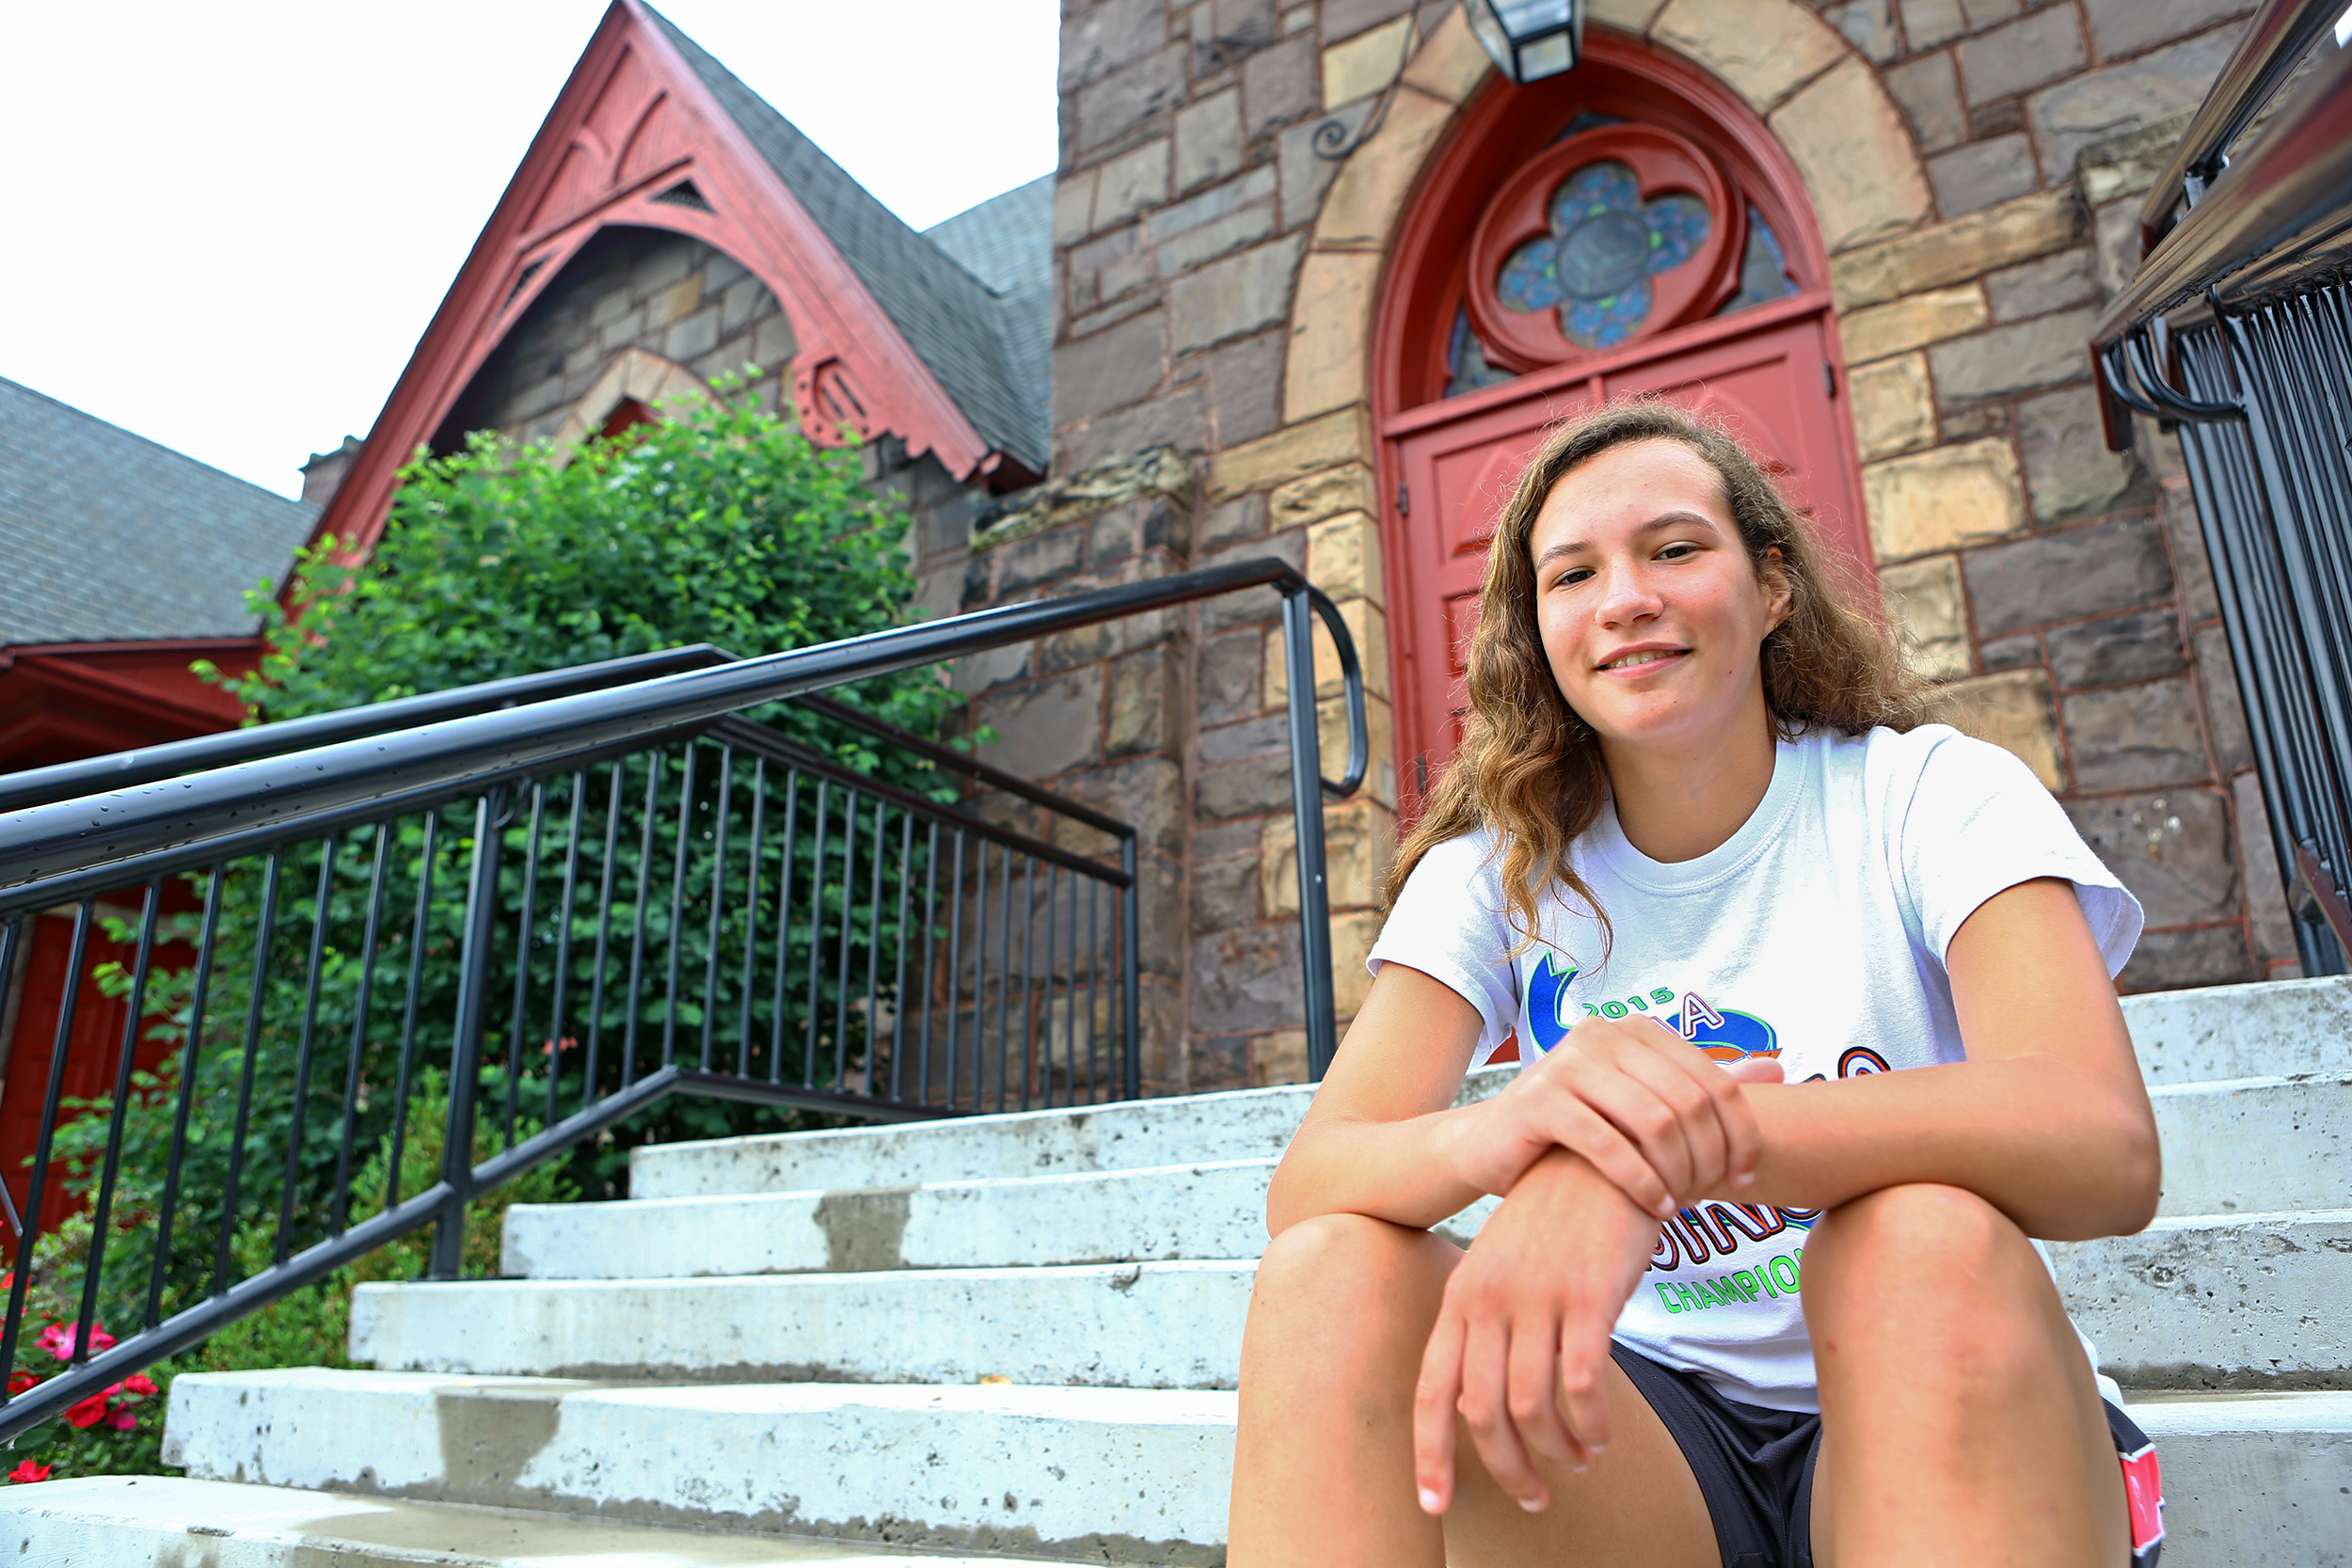 Penns Valley rising junior Alexis Witherite poses for a photo on the steps of Trinity United Church of Christ on Sunday, June 5, 2016. Witherite will be leading a mission group to Guatemala to build brick stoves and replant trees.